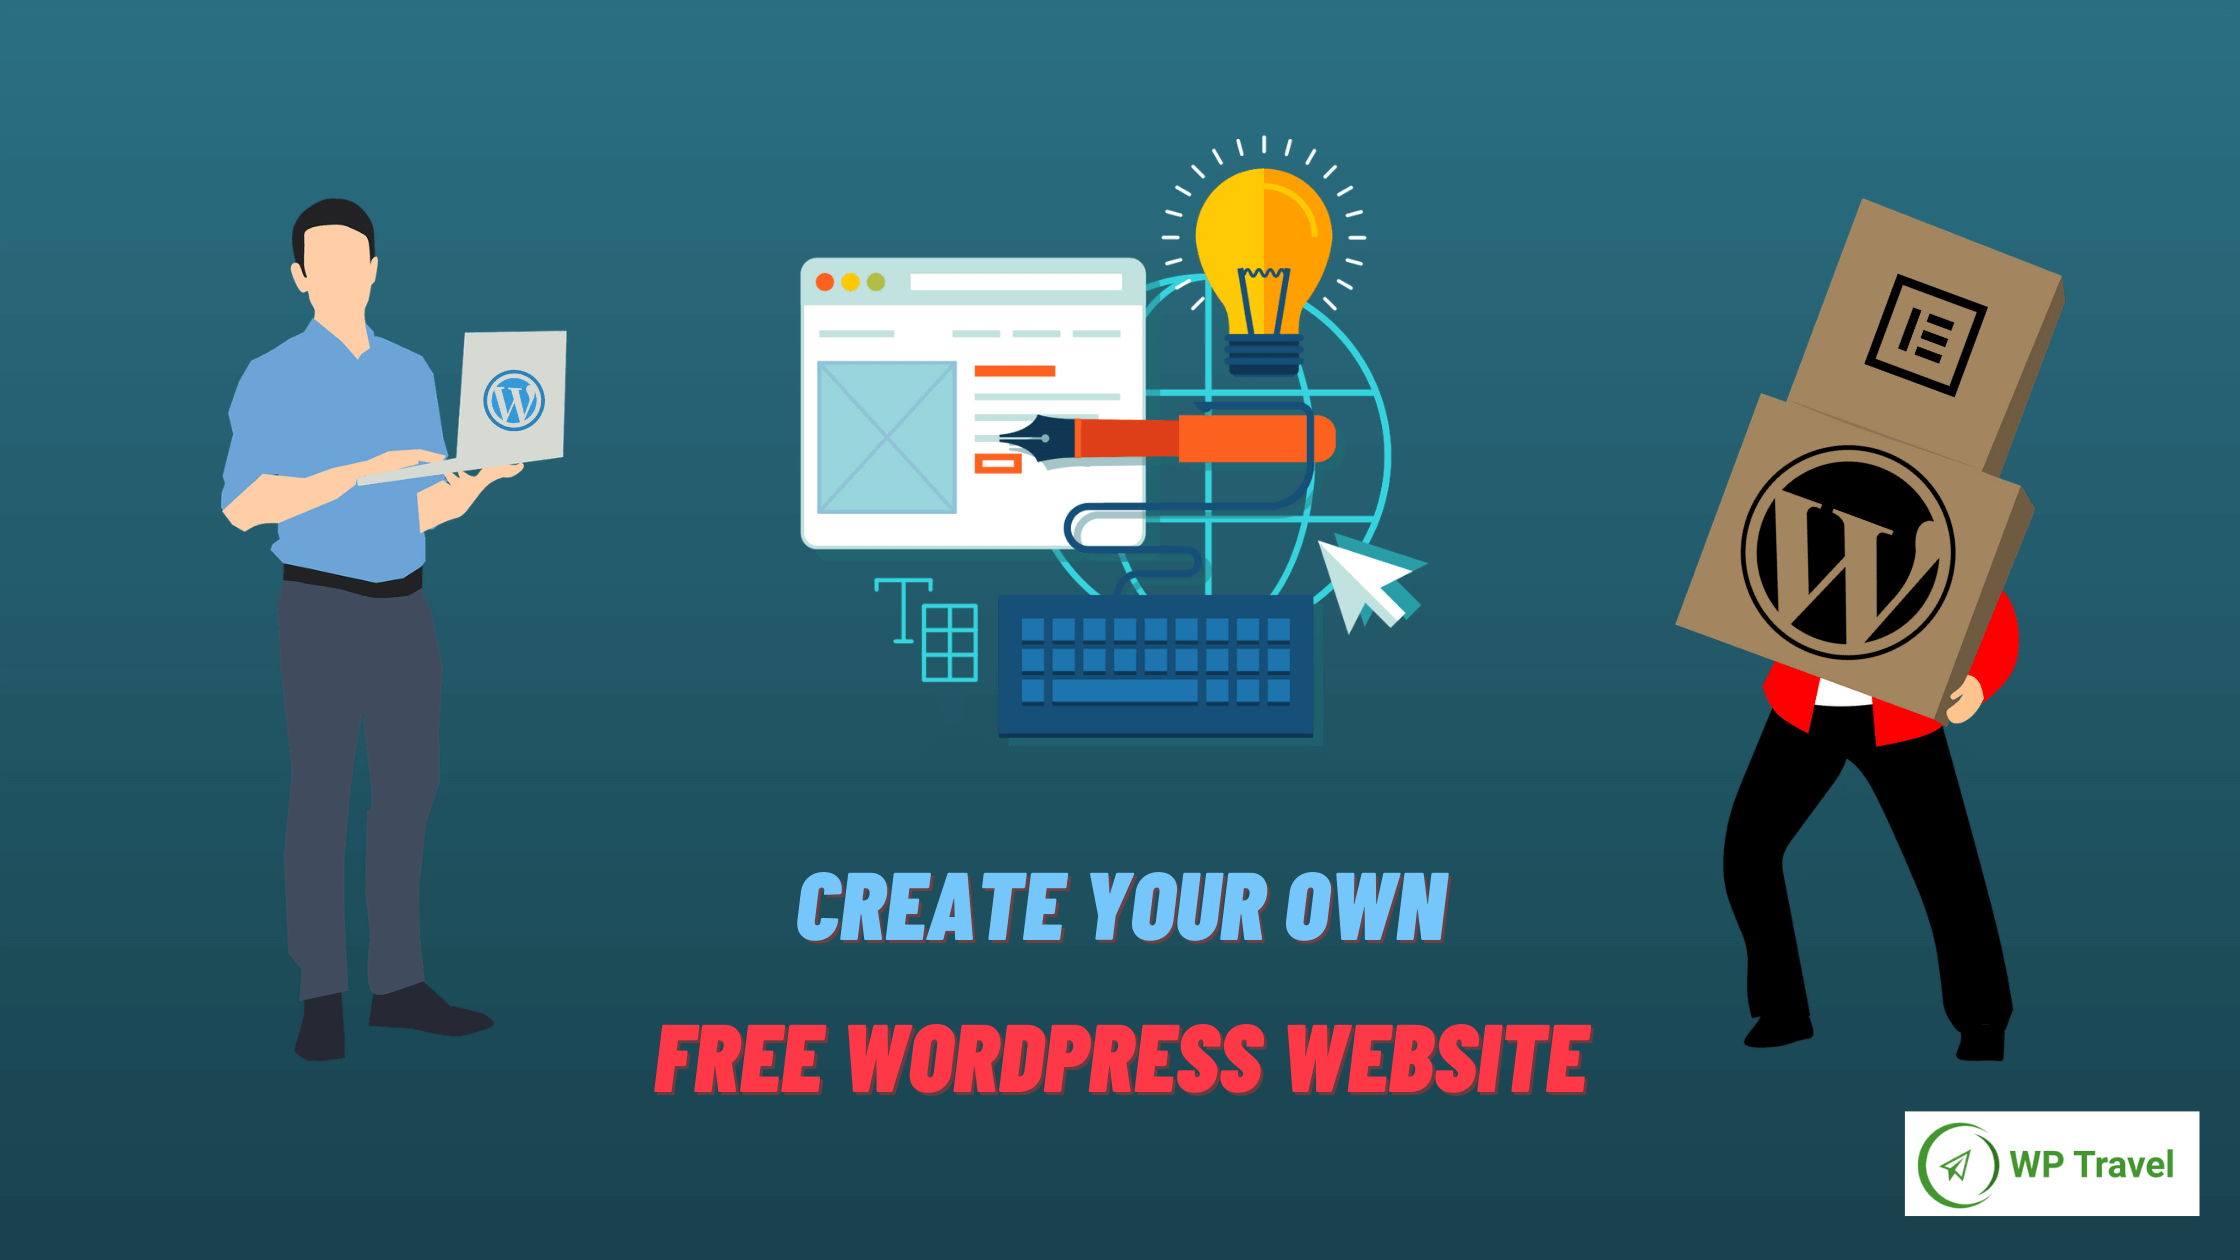 How to make a free WordPress website in 7 easy steps